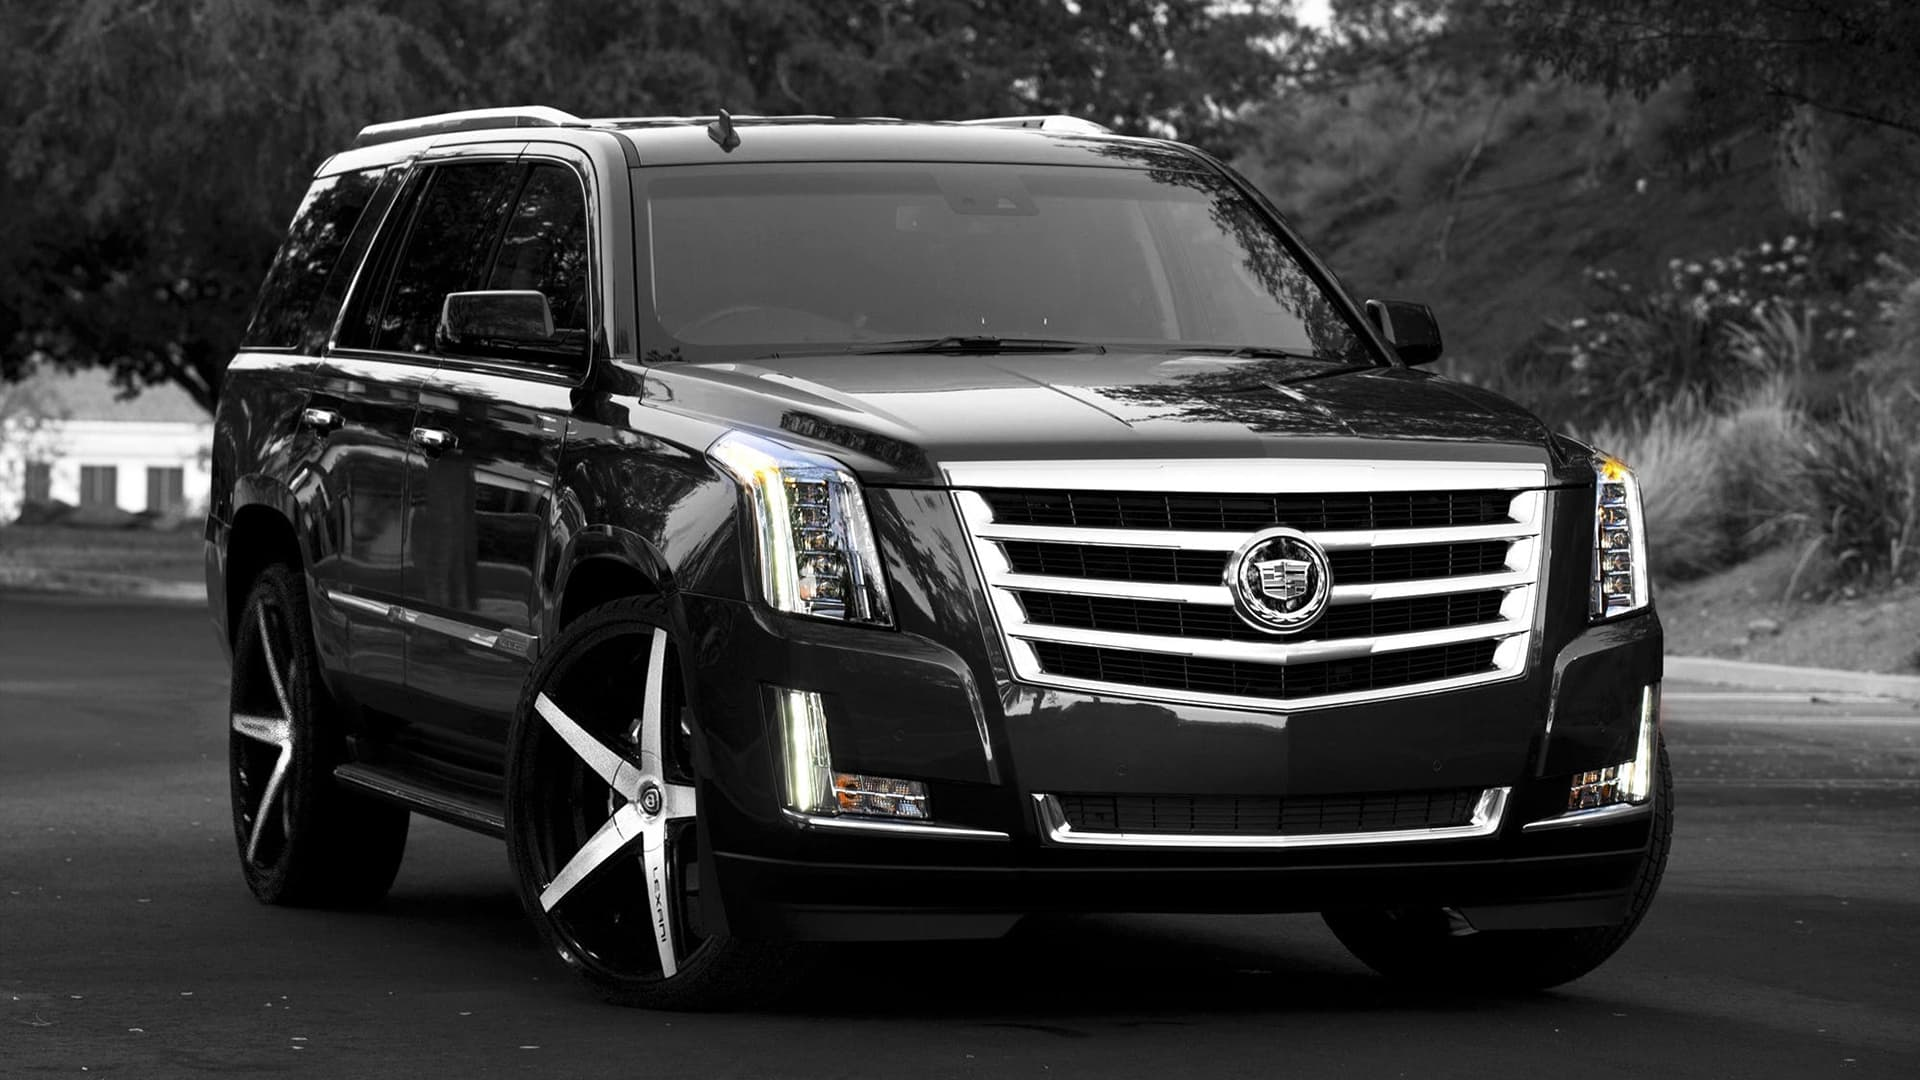 black 2015 cadillac escalade high resolution wallpaper 20 cadillac escalade wallpapers hd GM Ignition Fuse Box Connector at gsmportal.co